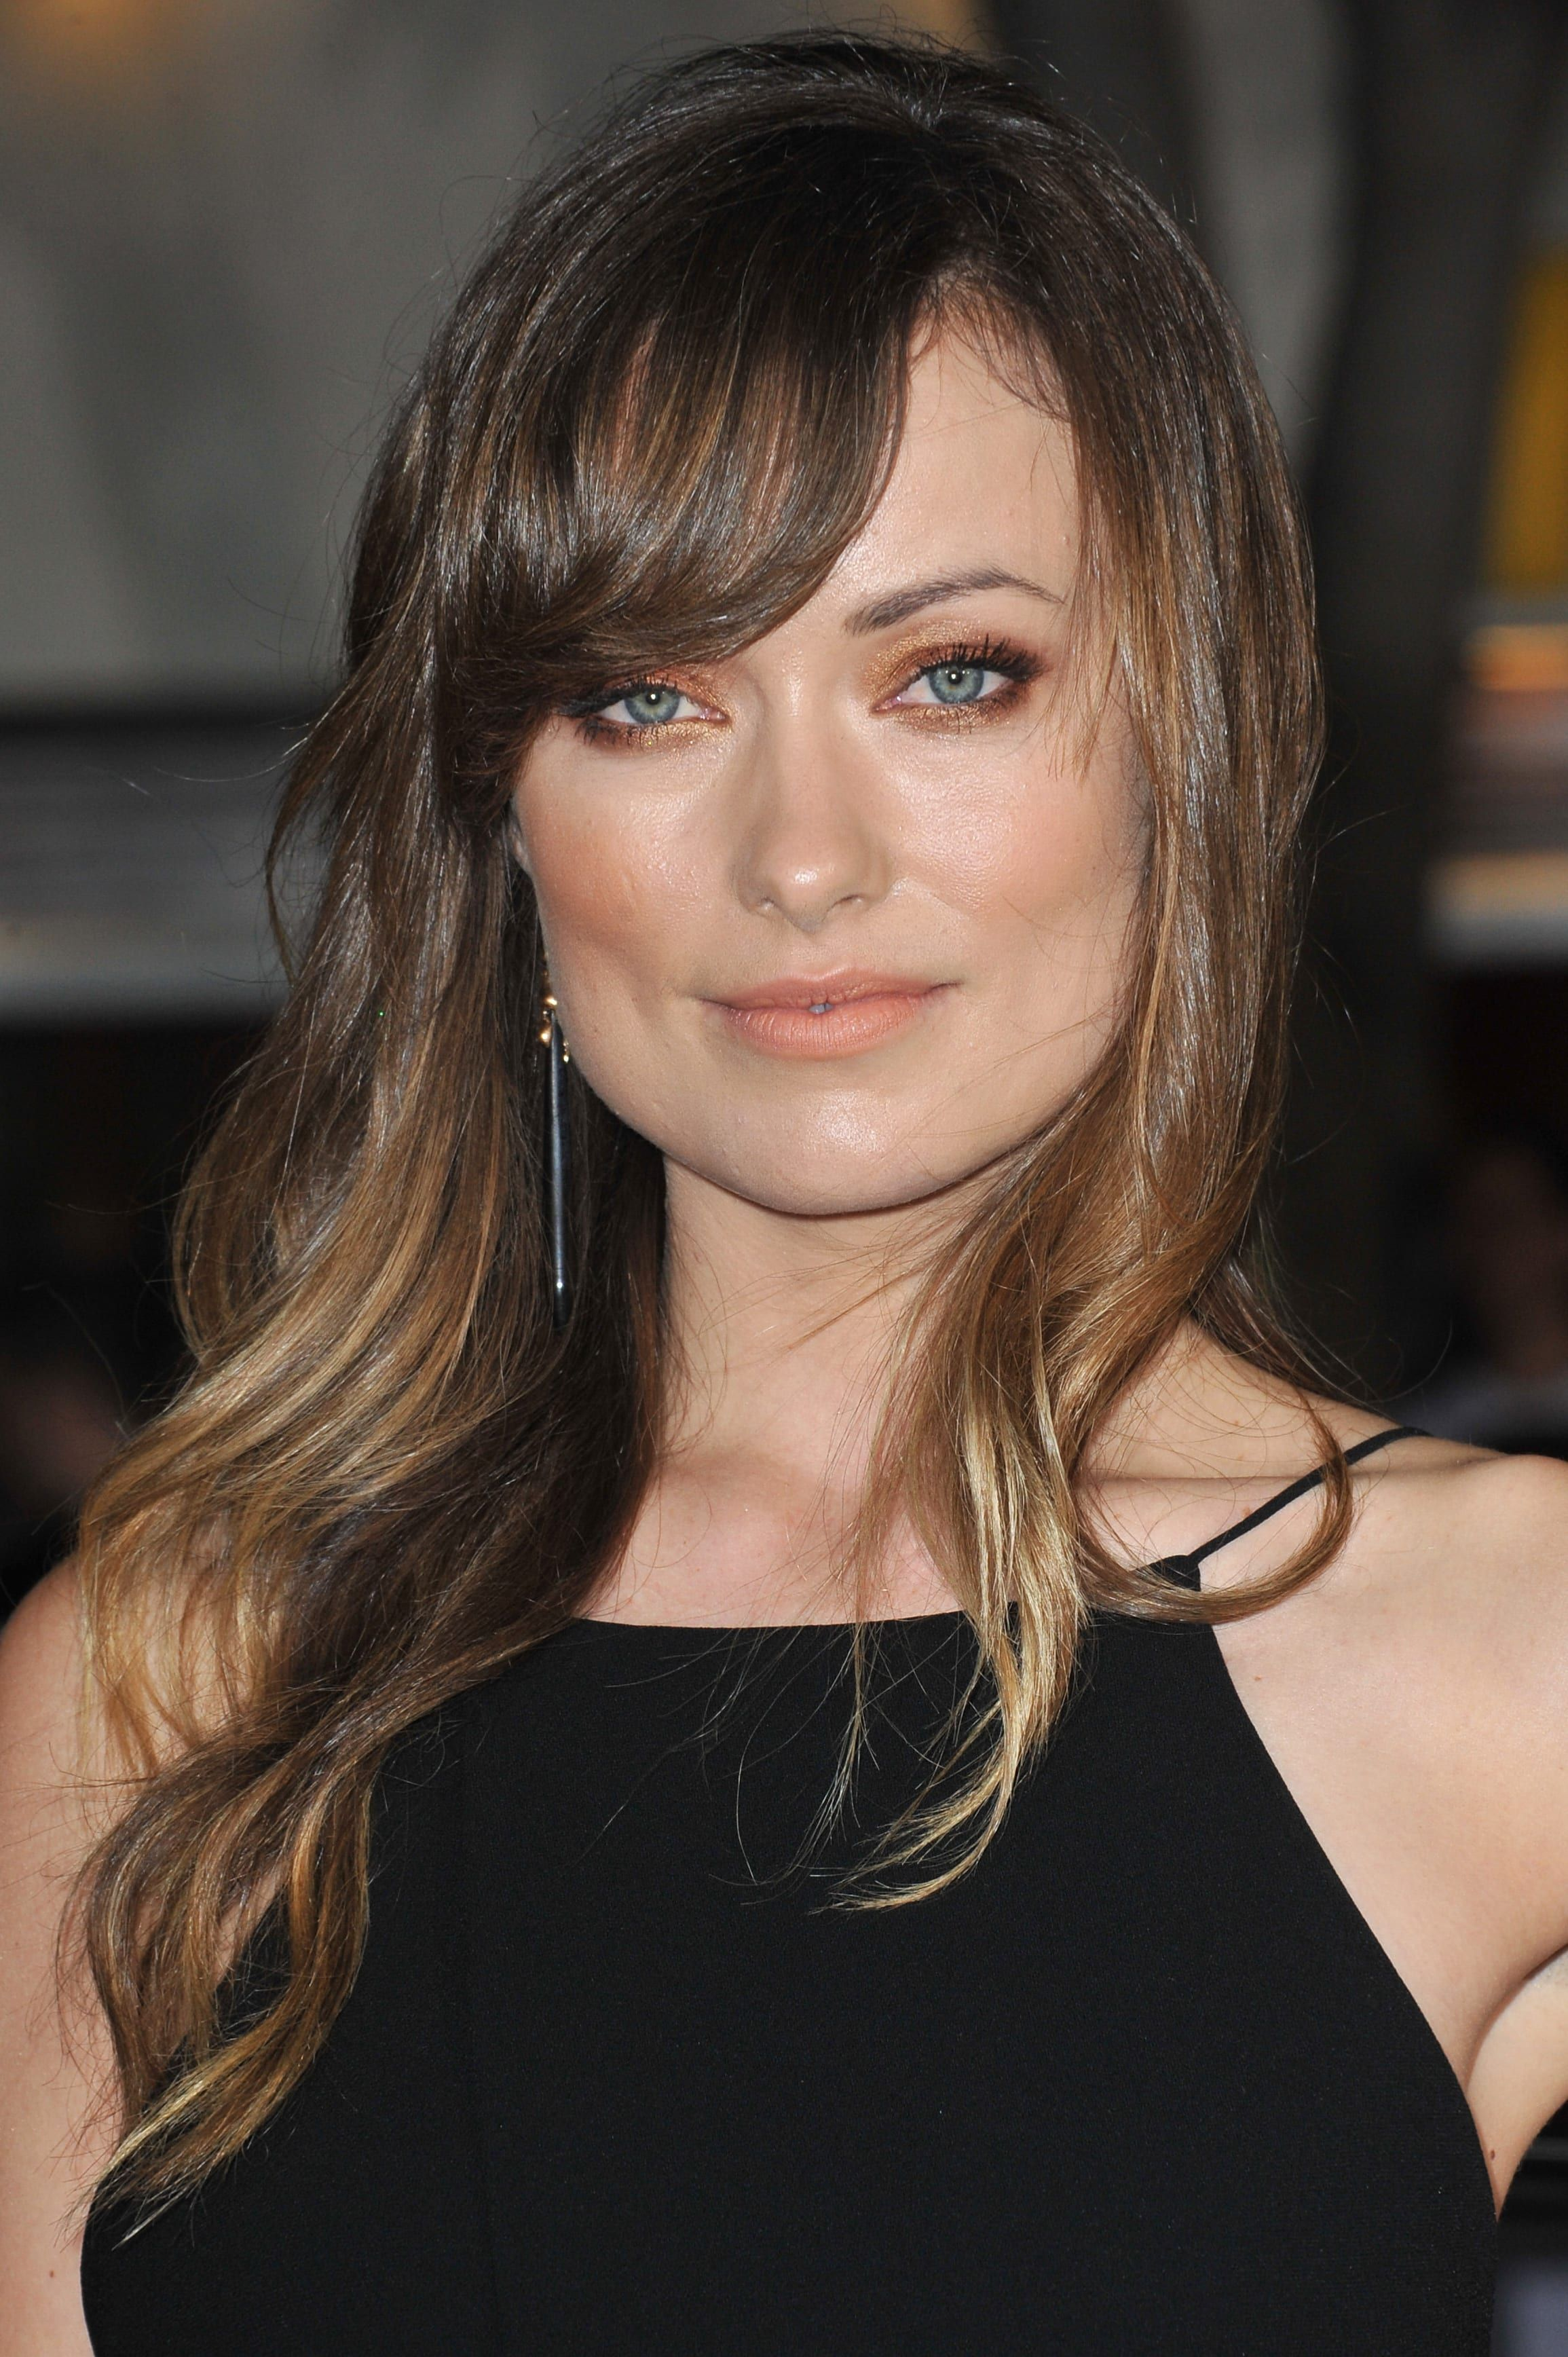 Olivia Wilde's Side Swept Bangs - Side swept bangs are one of those  hairstyles that always seem…   Haircut inspiration, Curly hair styles  naturally, Womens haircuts